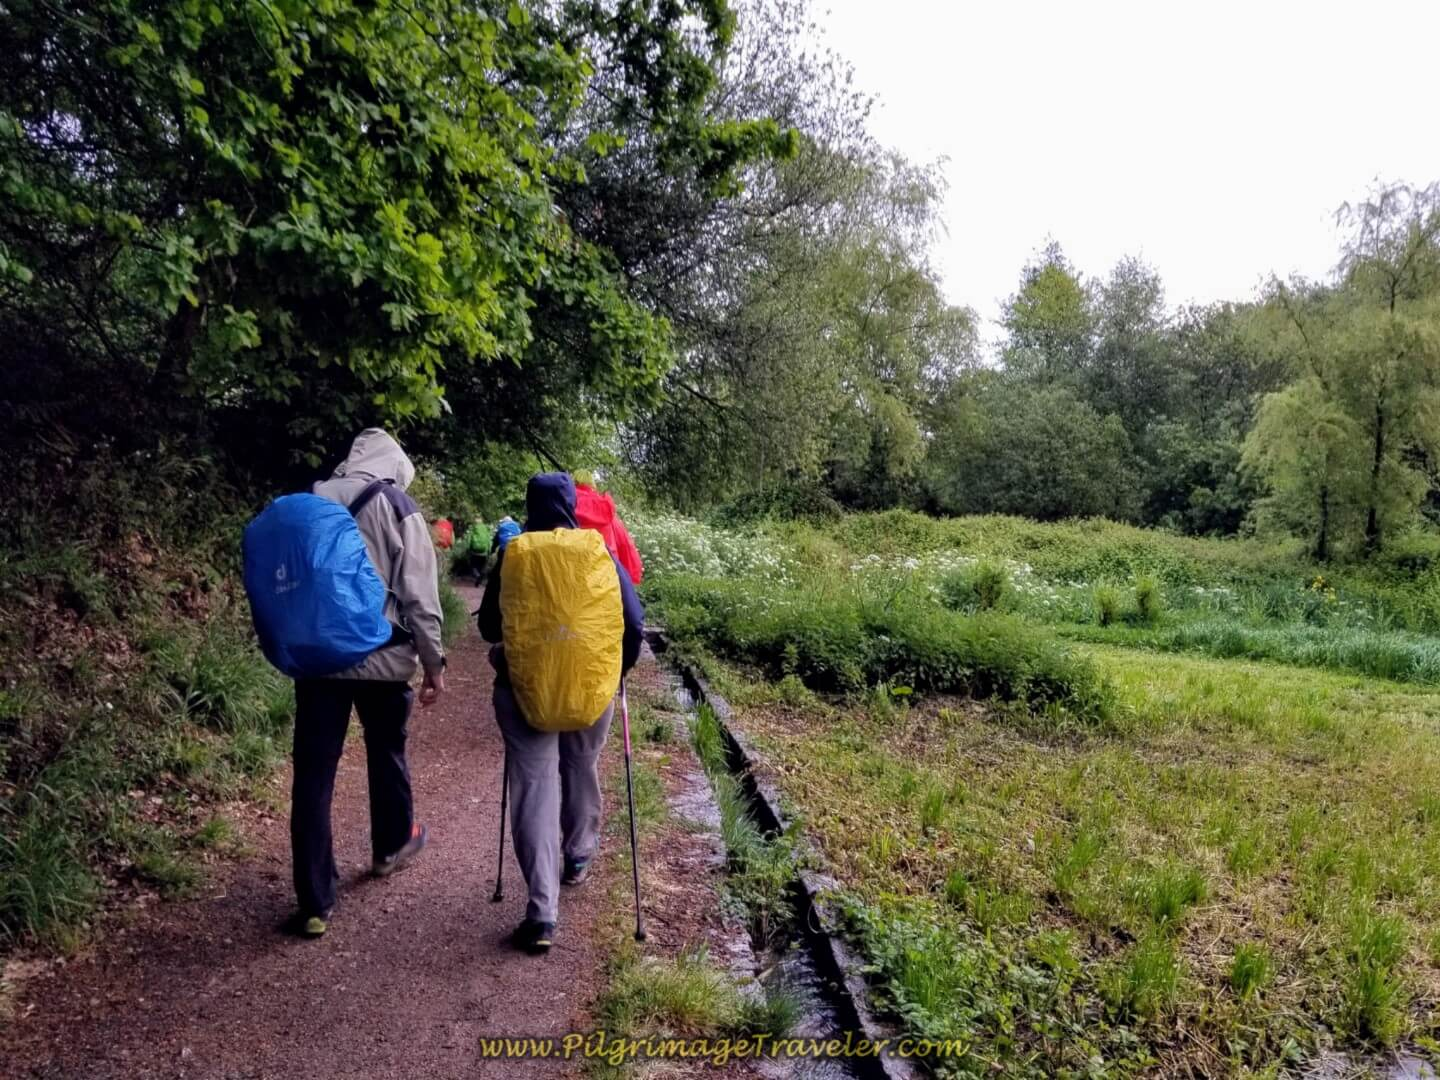 Join Farmer's Lane on day twenty on the central route of the Portuguese Camino